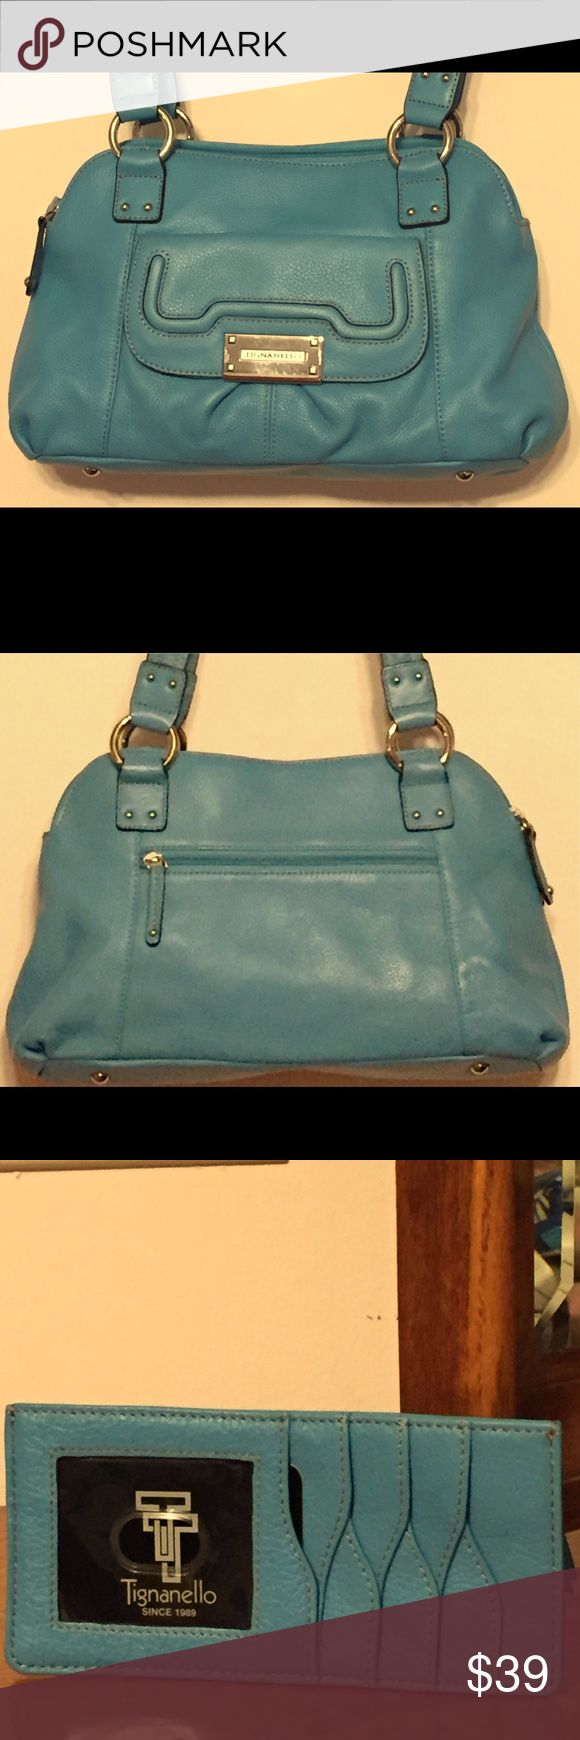 "Tignanello Leather Satchel Beautiful turquoise double zip top pebble leather Tignanello satchel & matching slim wallet. Purse has good sized pocket with magnetic closure on front & rear zipped pocket.  2 large zip compartments with one having 2 slip & 1 zip pockets. Front buckle has a few minor hard to see scratches. Barely noticeable unless you look for it. Otherwise, bag in mint condition. Measures 14""L x 8""H x 4 1/2""W & 11"" strap drop. Wallet measures 6 3/4""L x 3 1/4""H. See pictures for…"